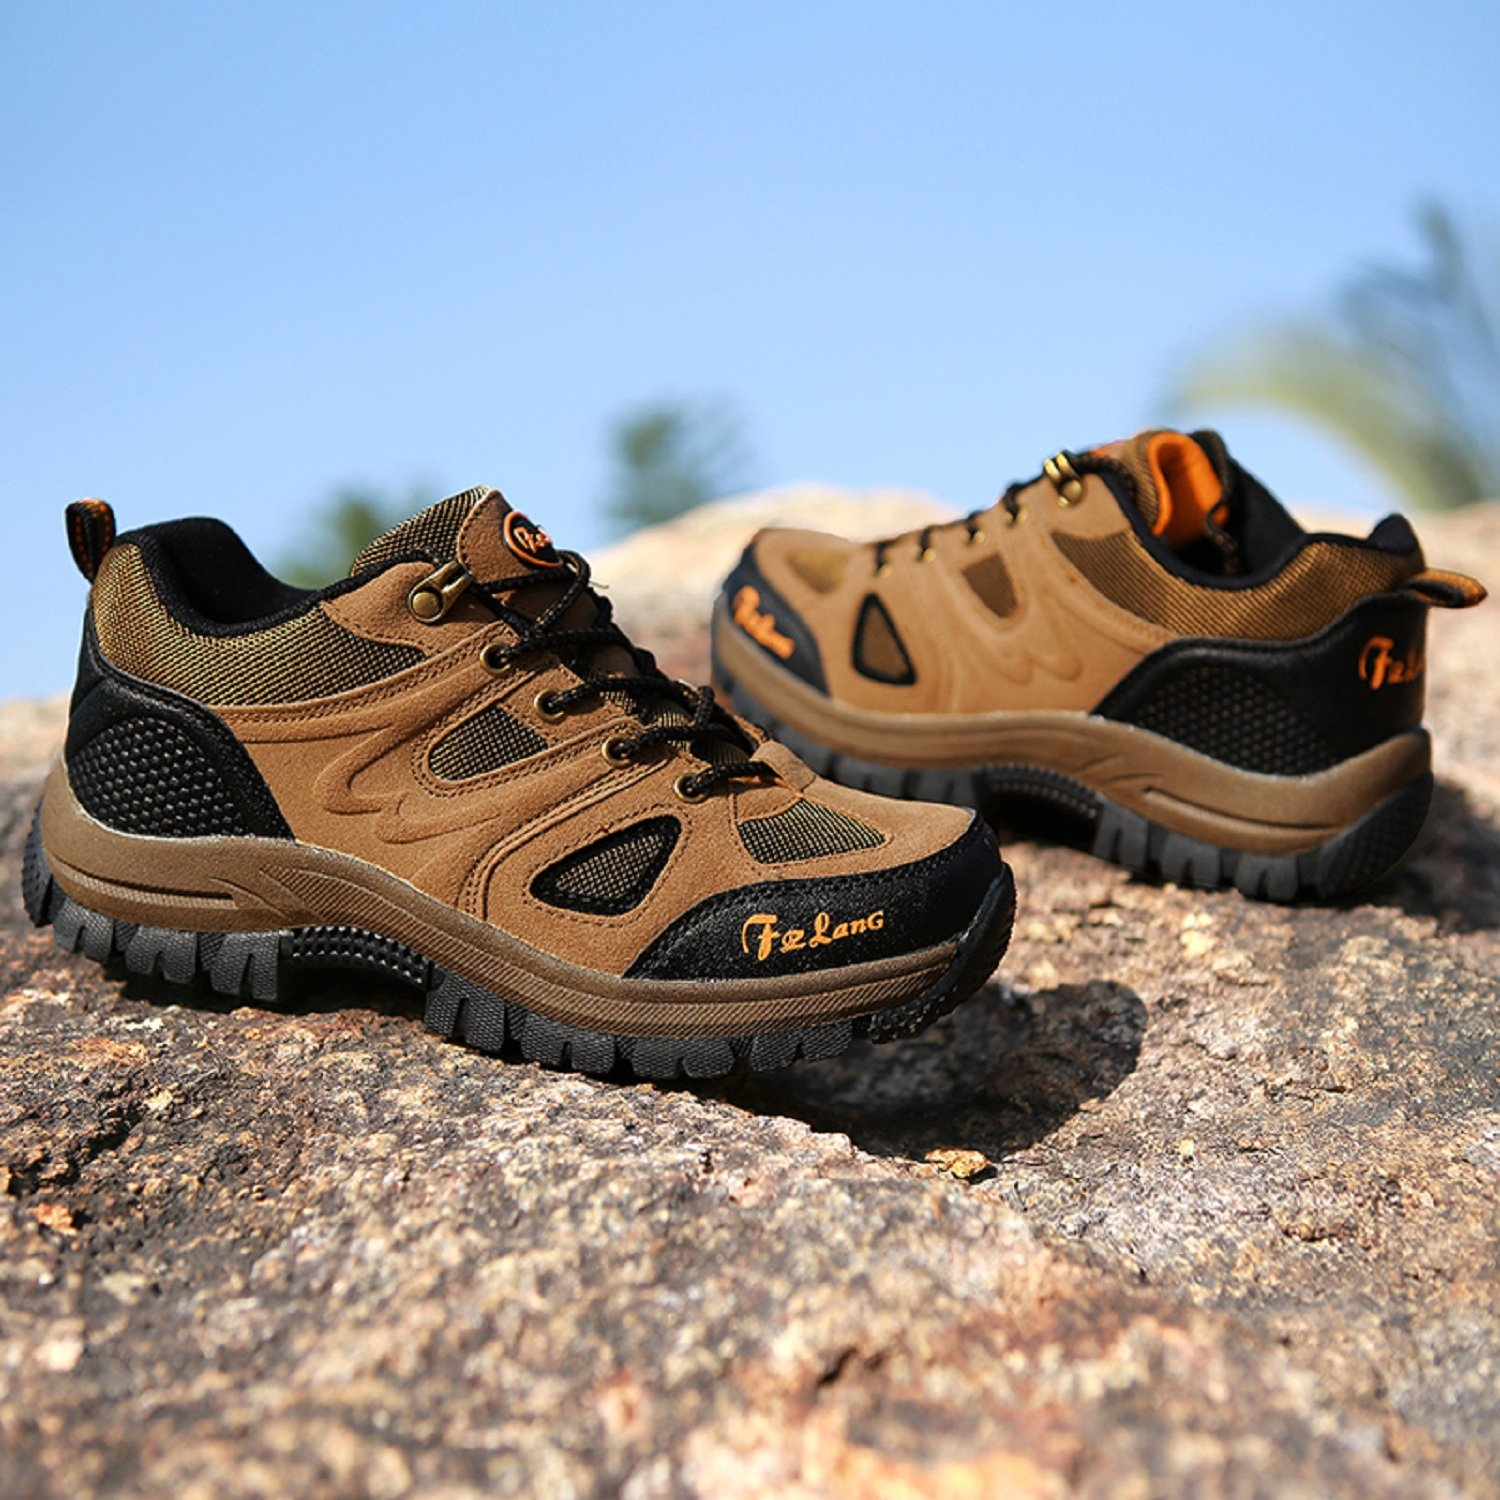 T-Gold 2017 Men's Waterproof Low Hiking Shoe Outdoor Breathable Climing Trekking Sports Summer by T-Gold (Image #5)